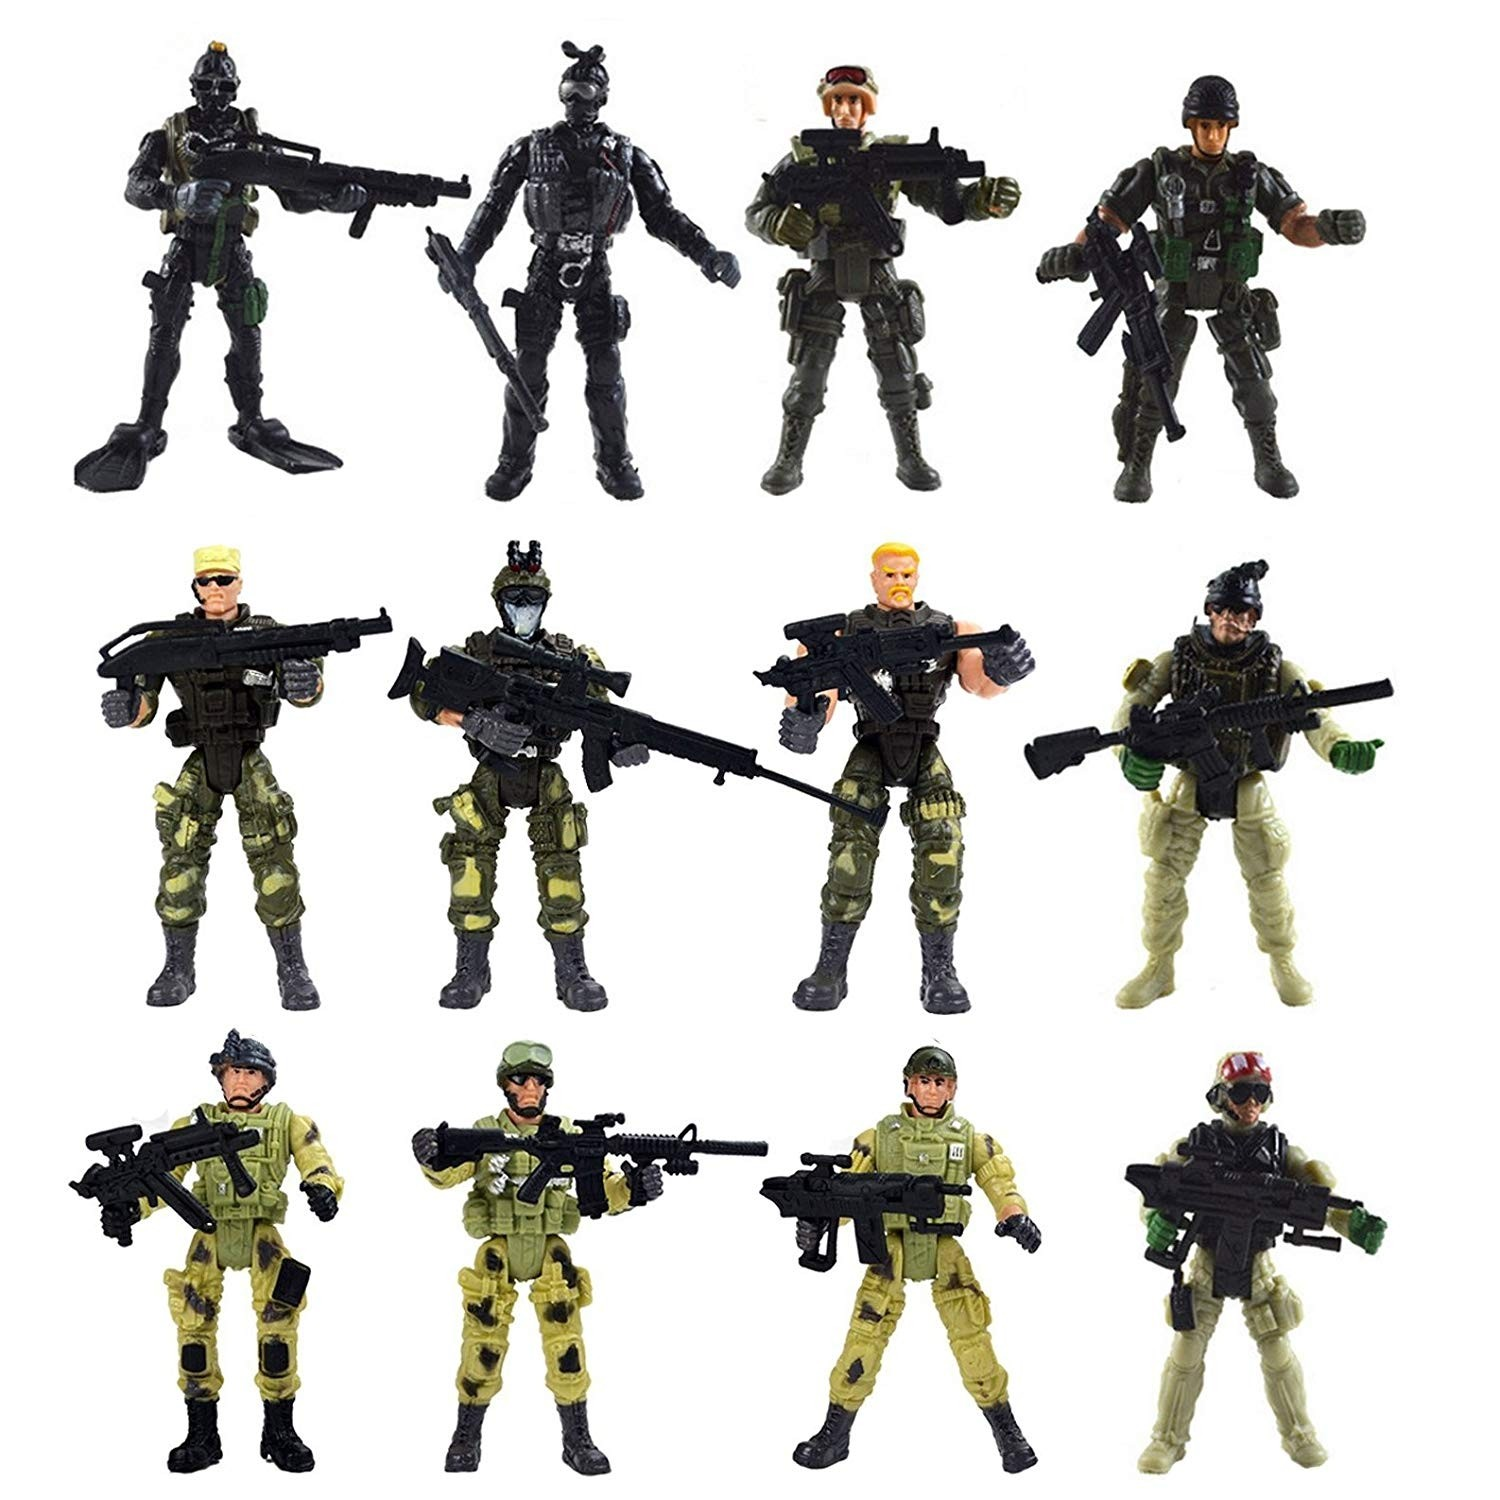 Special Force Army SWAT Soldiers Action Figures with Weapons and Accessories 4 Inches Tall, 12 Figures/Pack